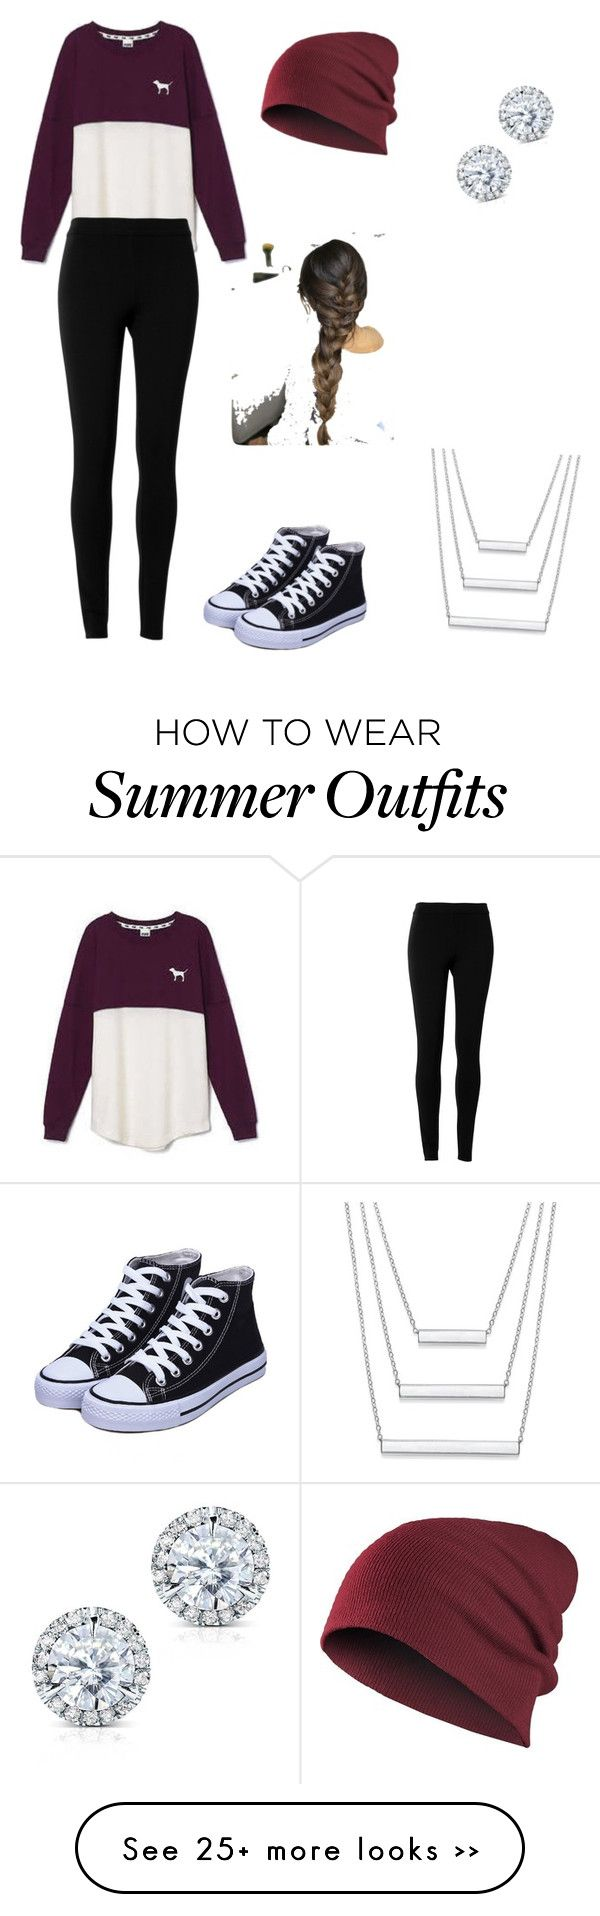 """""""Simple Go to school outfit"""" by no3ly on Polyvore featuring moda, Victoria's Secret, Max Studio e Kobelli"""